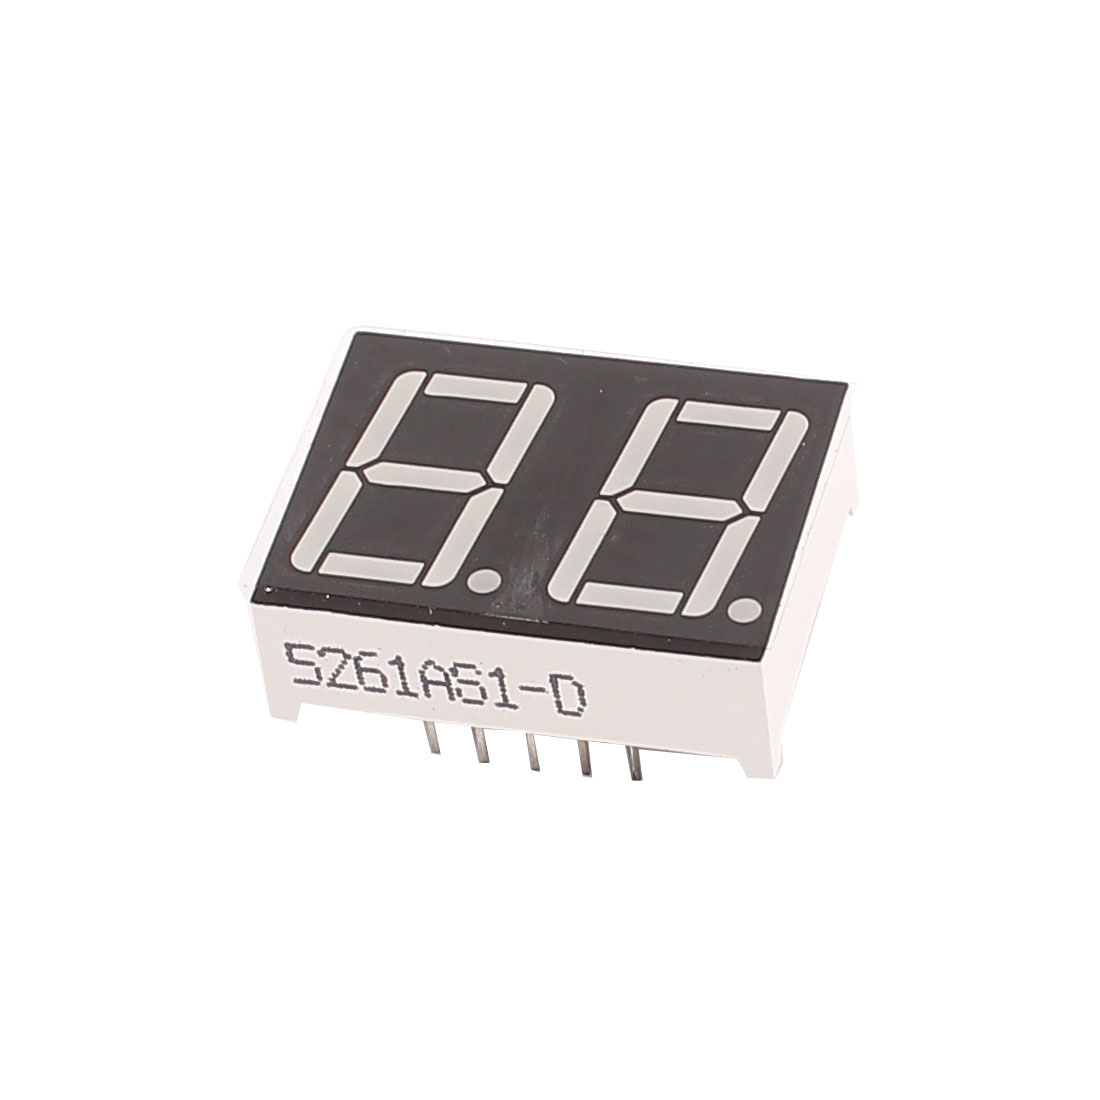 "Common Cathode 10 Pin 2 Bit 7 Segment 0.56"" Red LED Display Digital Tube"